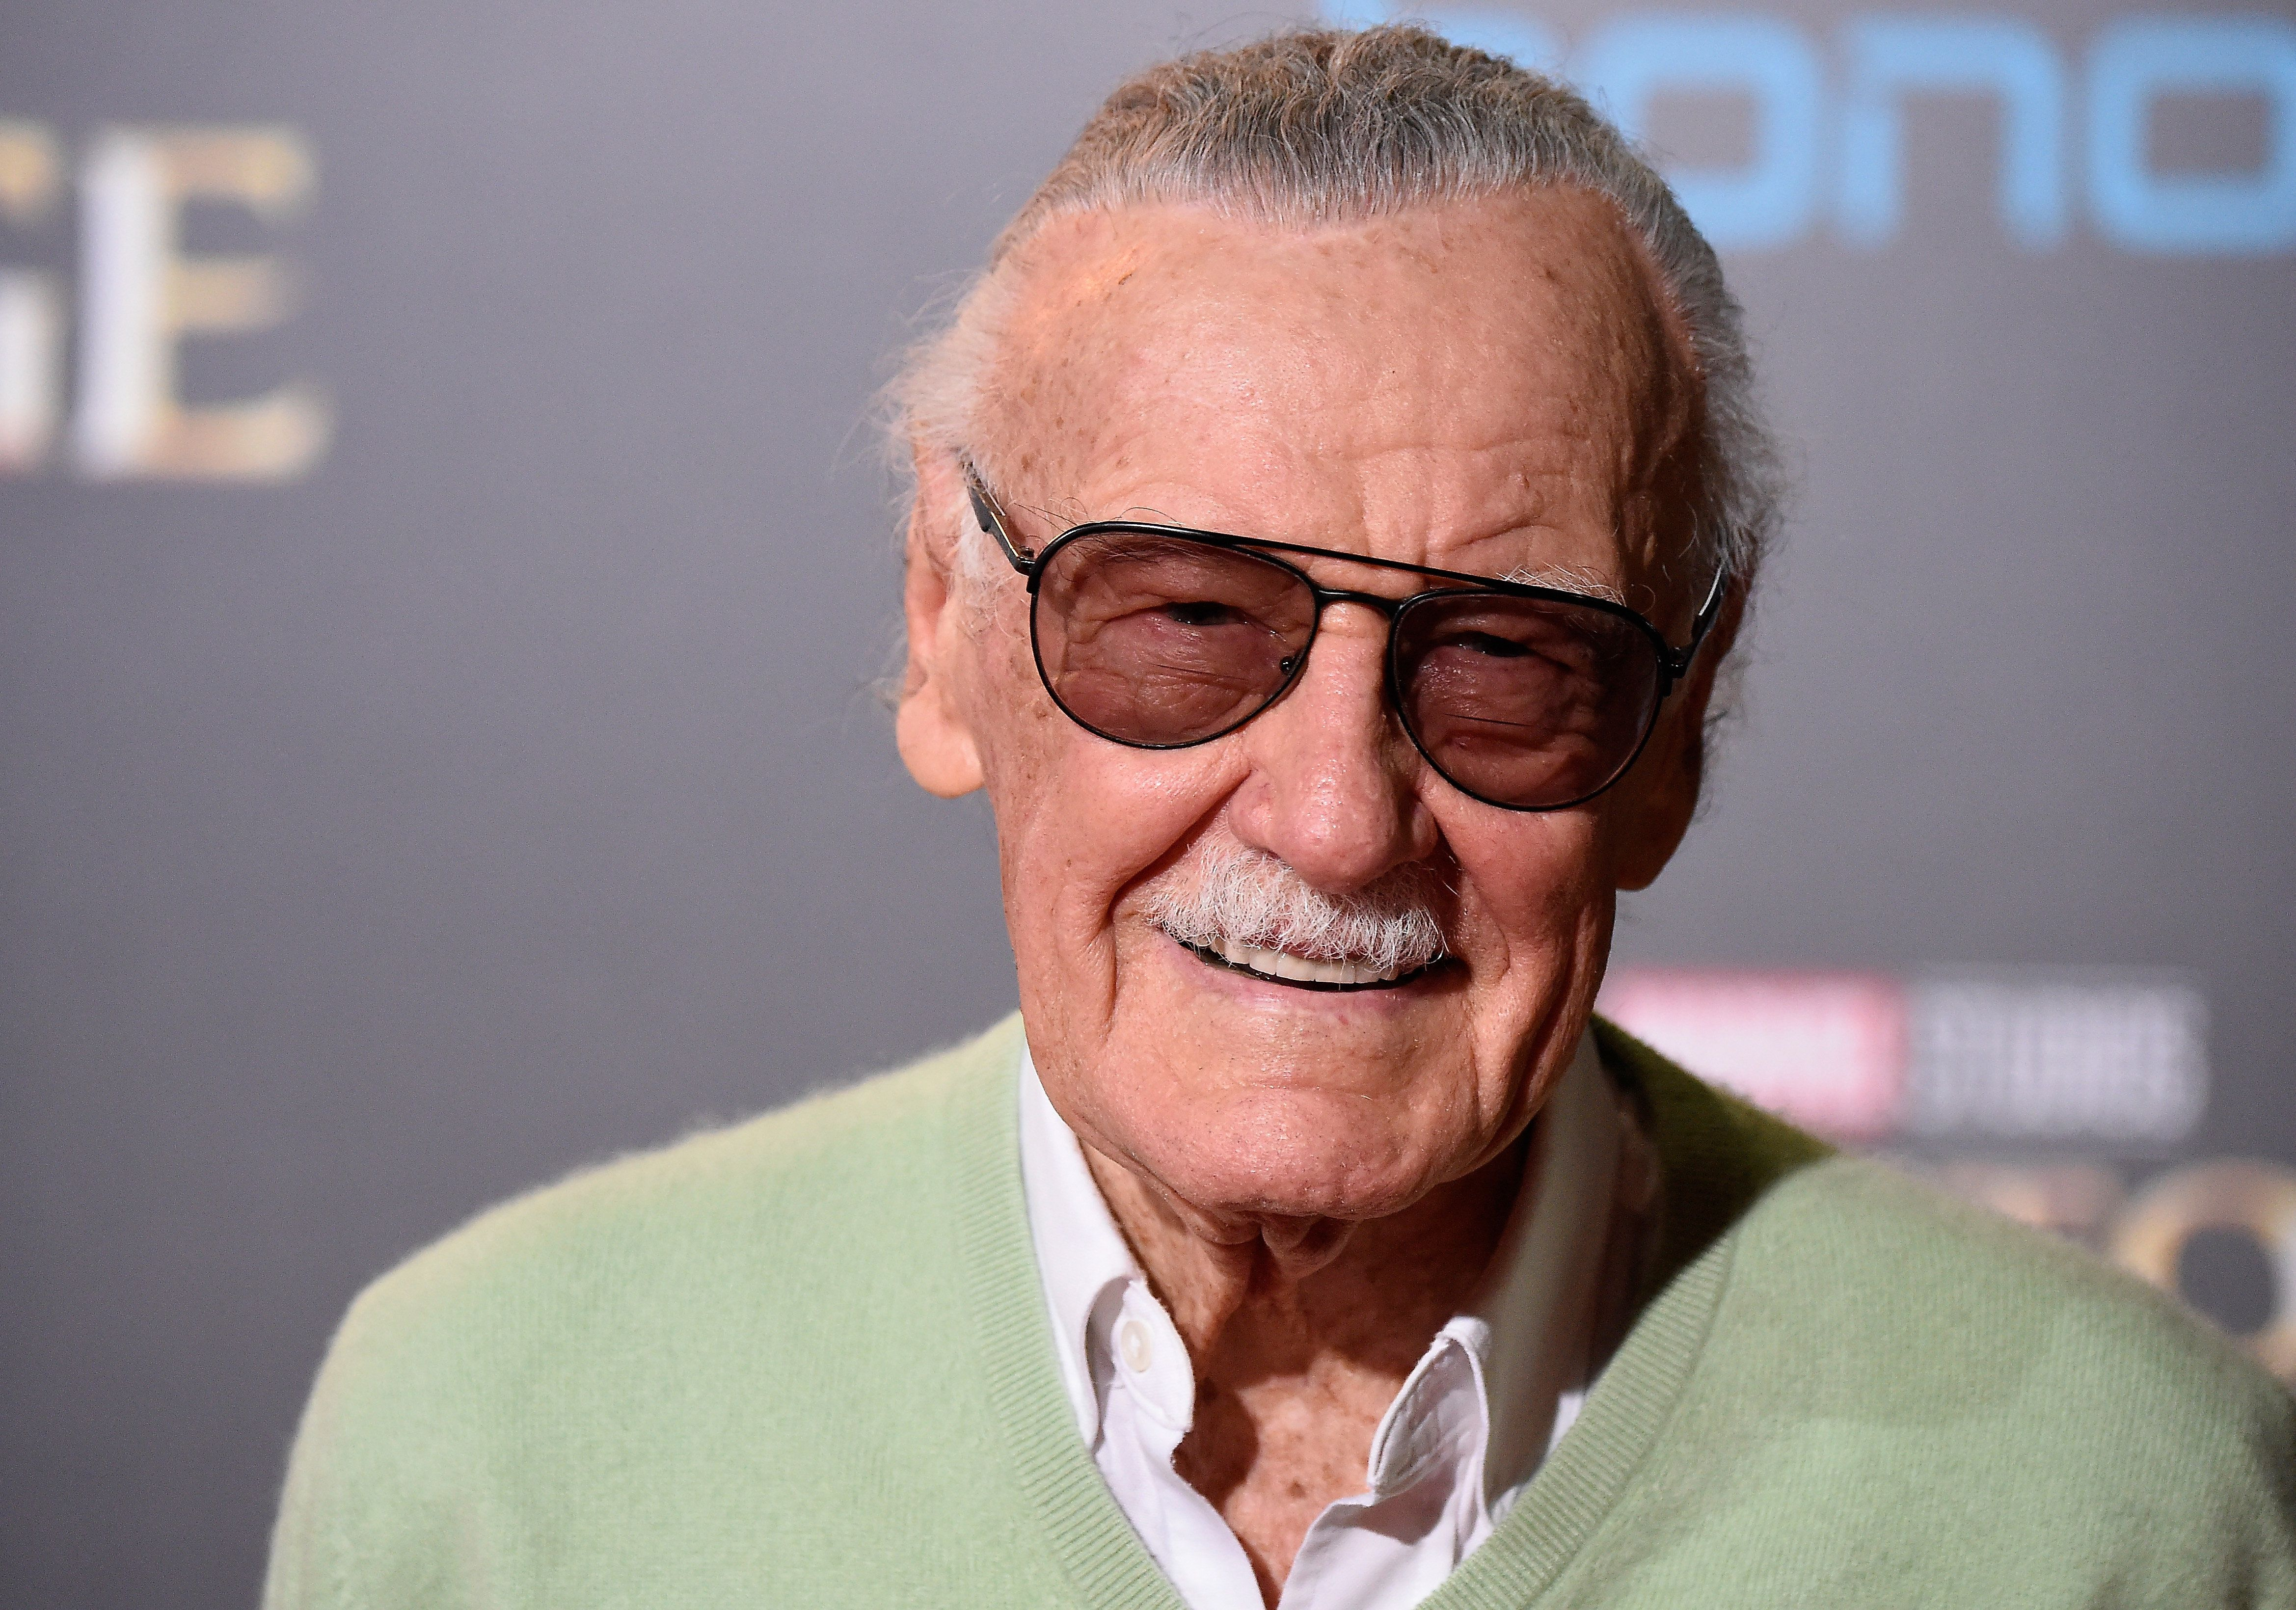 HOLLYWOOD, CA - OCTOBER 20:  Stan Lee attends the Premiere of Disney and Marvel Studios' 'Doctor Strange' on October 20, 2016 in Hollywood, California.  (Photo by Frazer Harrison/Getty Images)